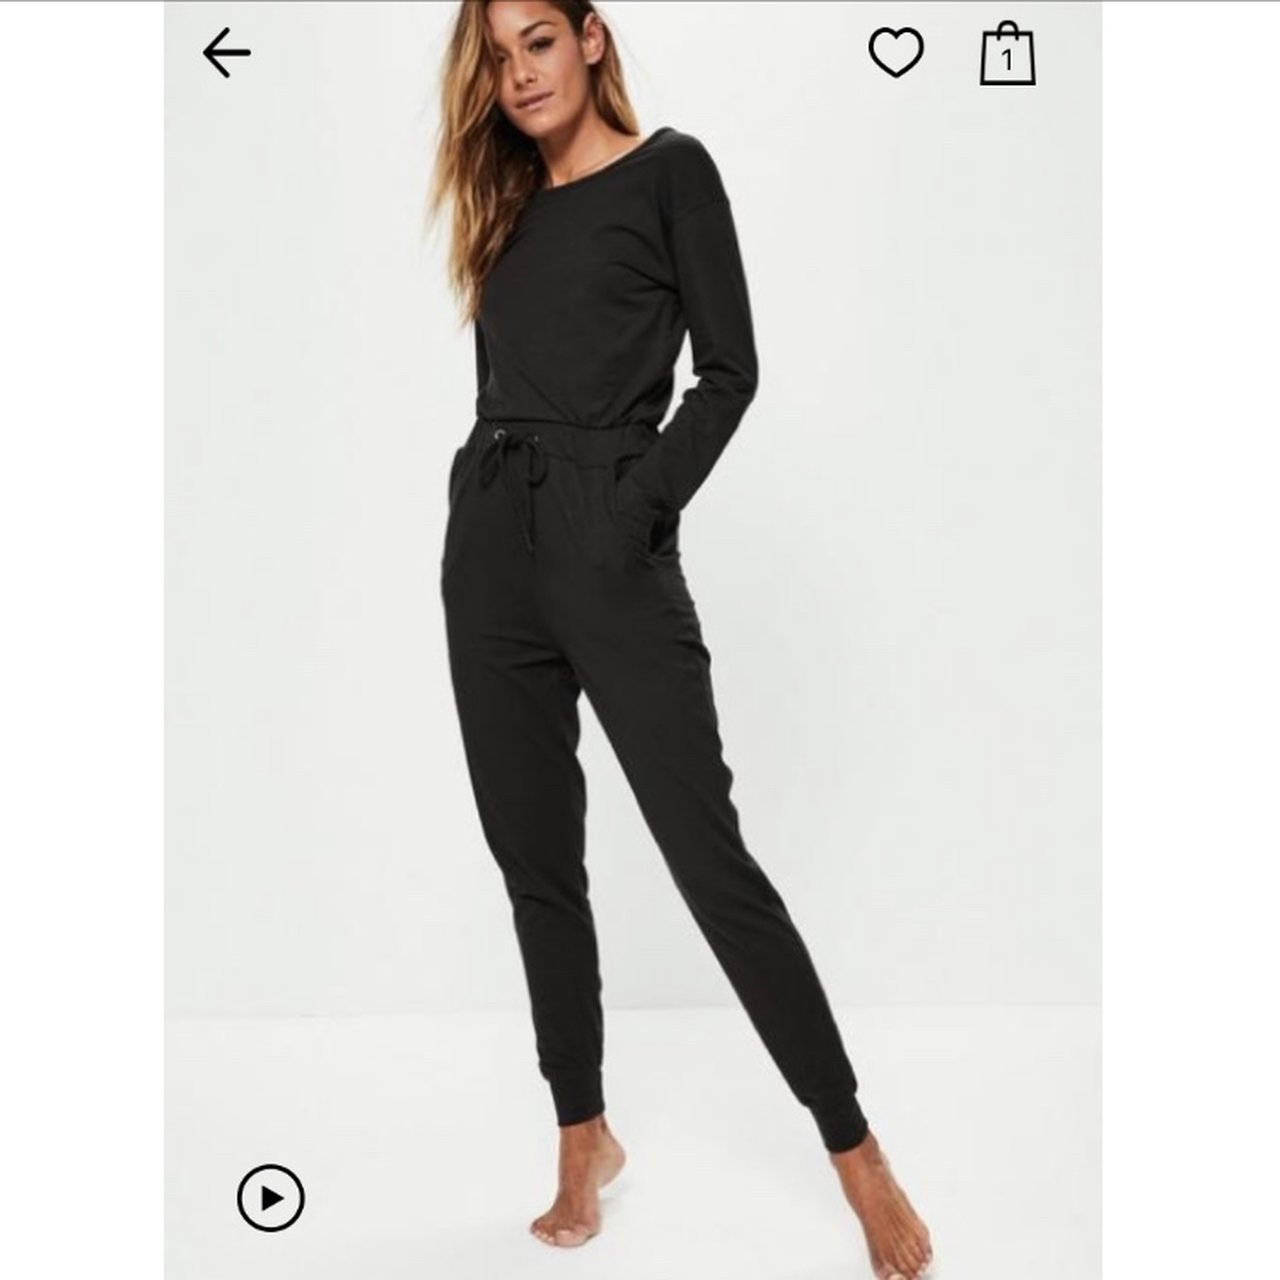 6462c930614 Missguided black casual loungewear jumpsuit Size UK new for - Depop